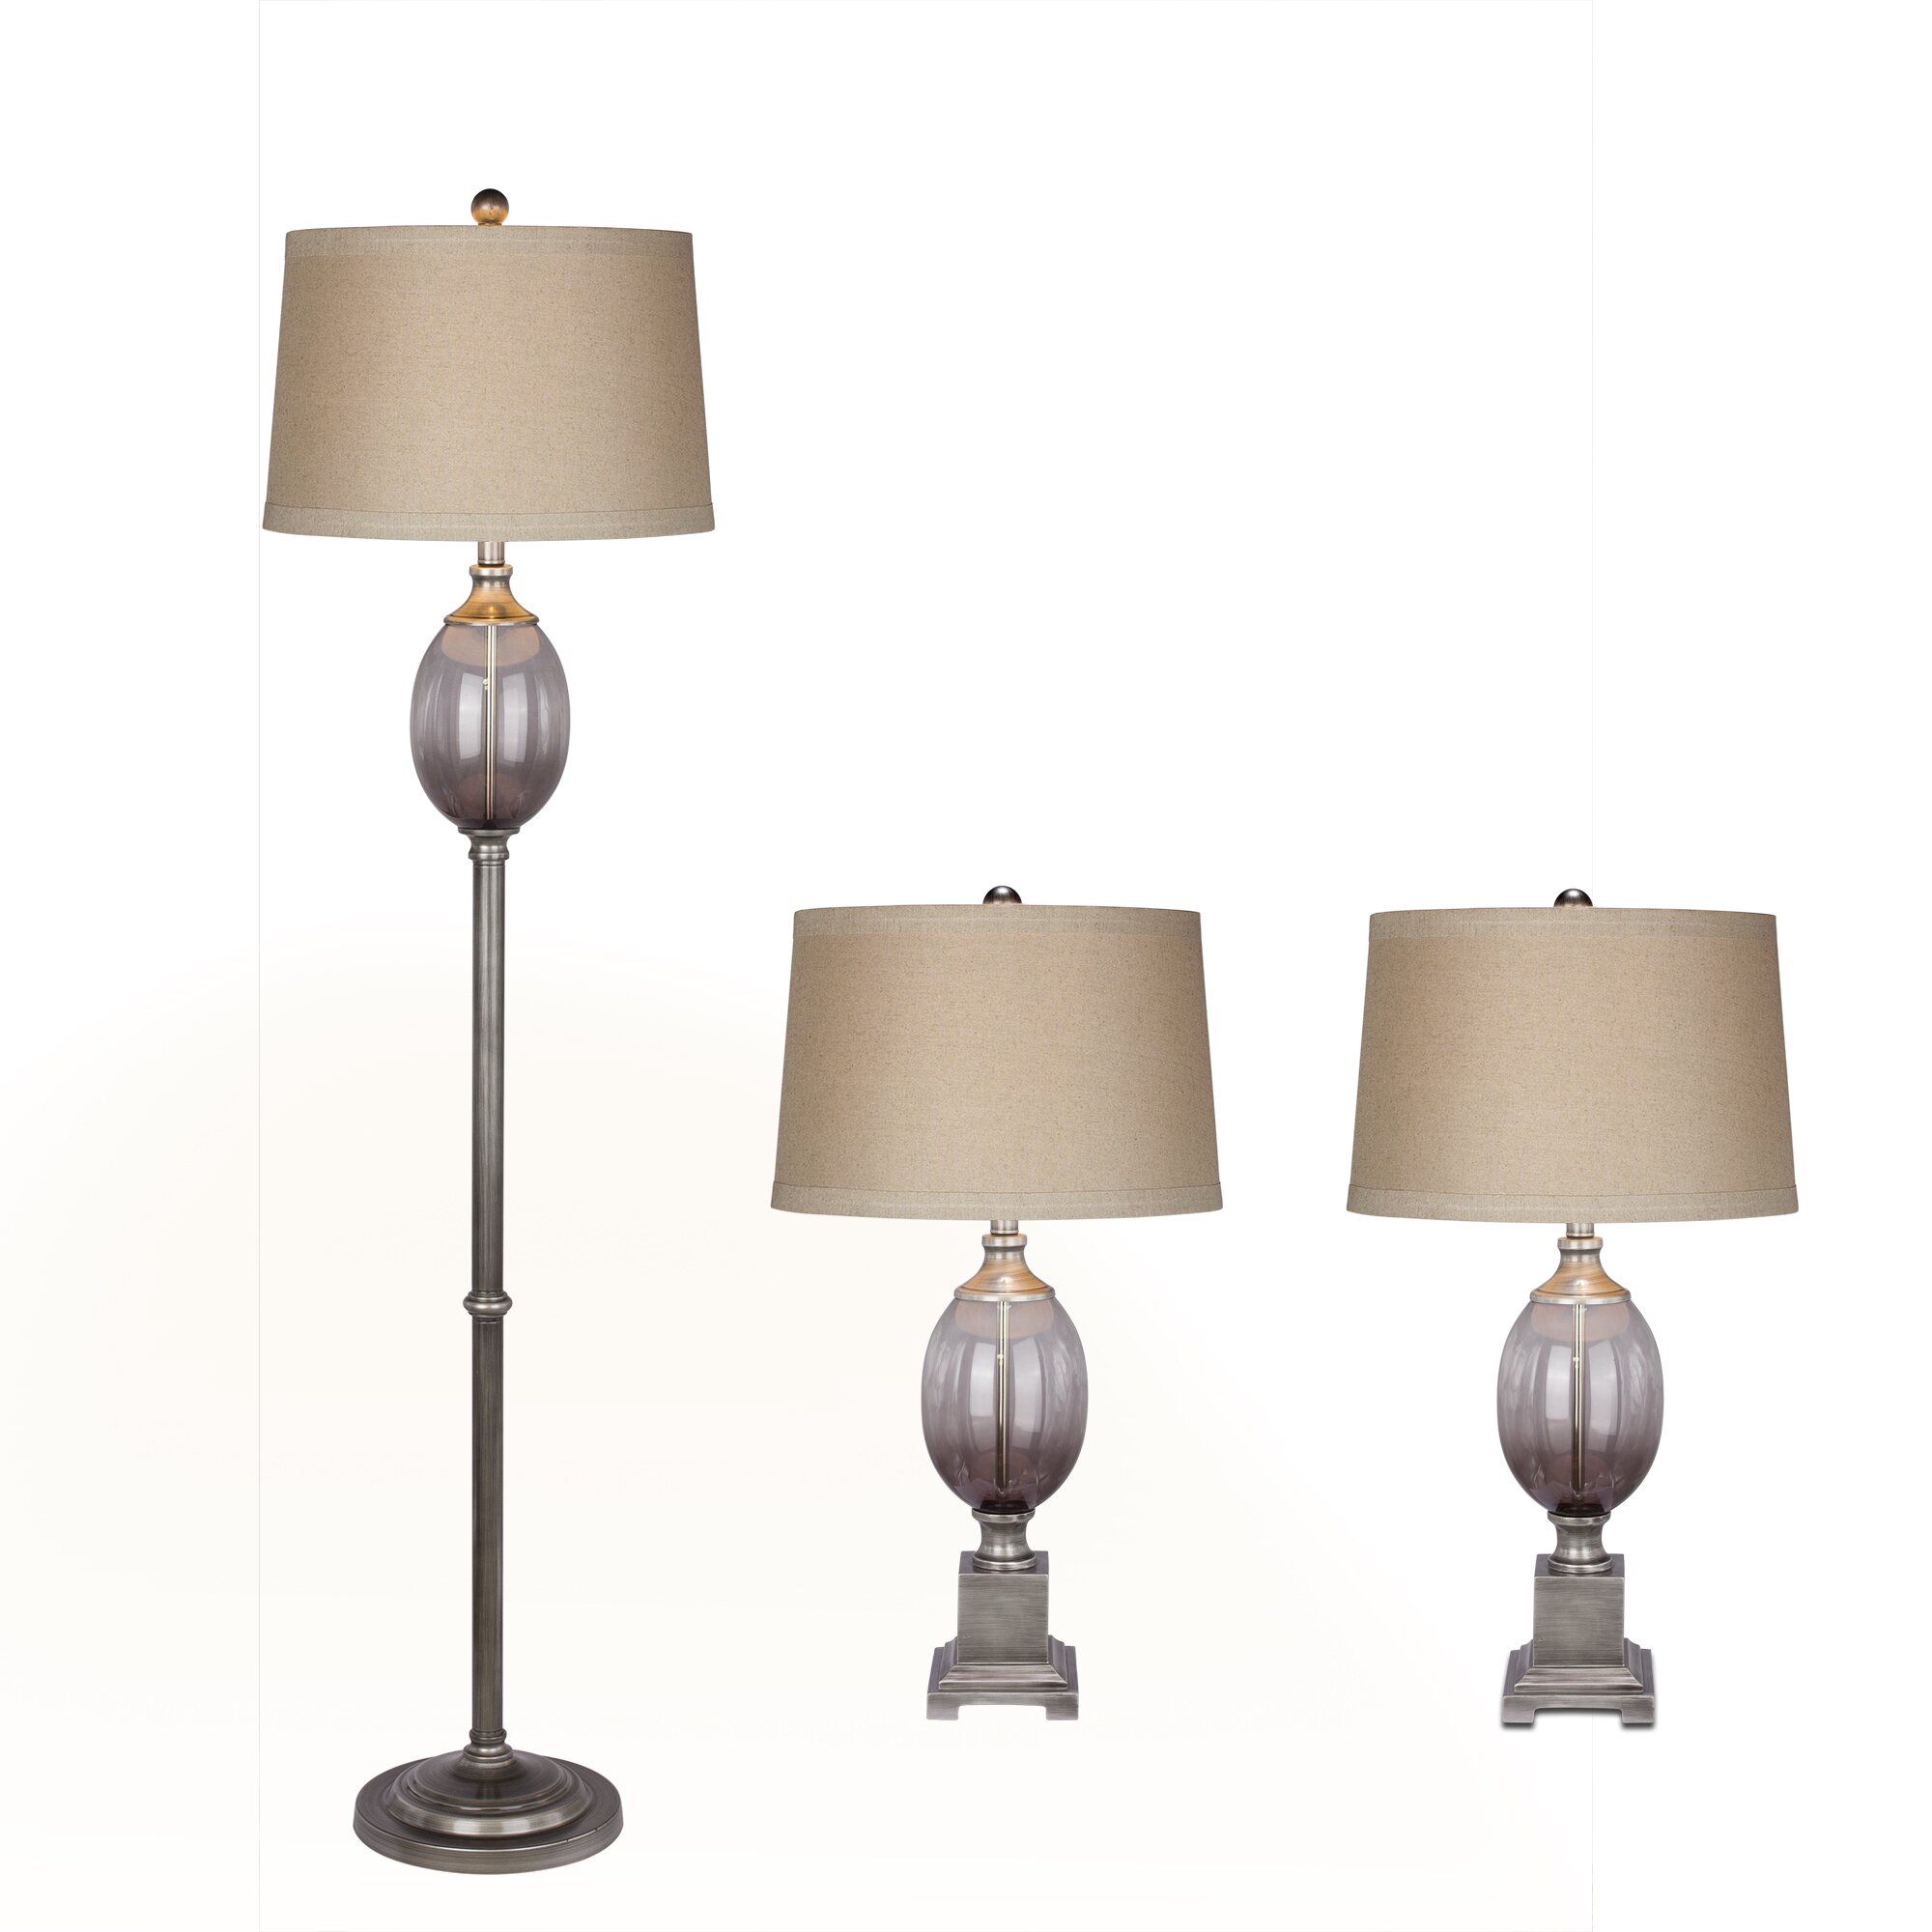 Fangio 3 piece table and floor lamp set reviews wayfair for Floor lamp with table